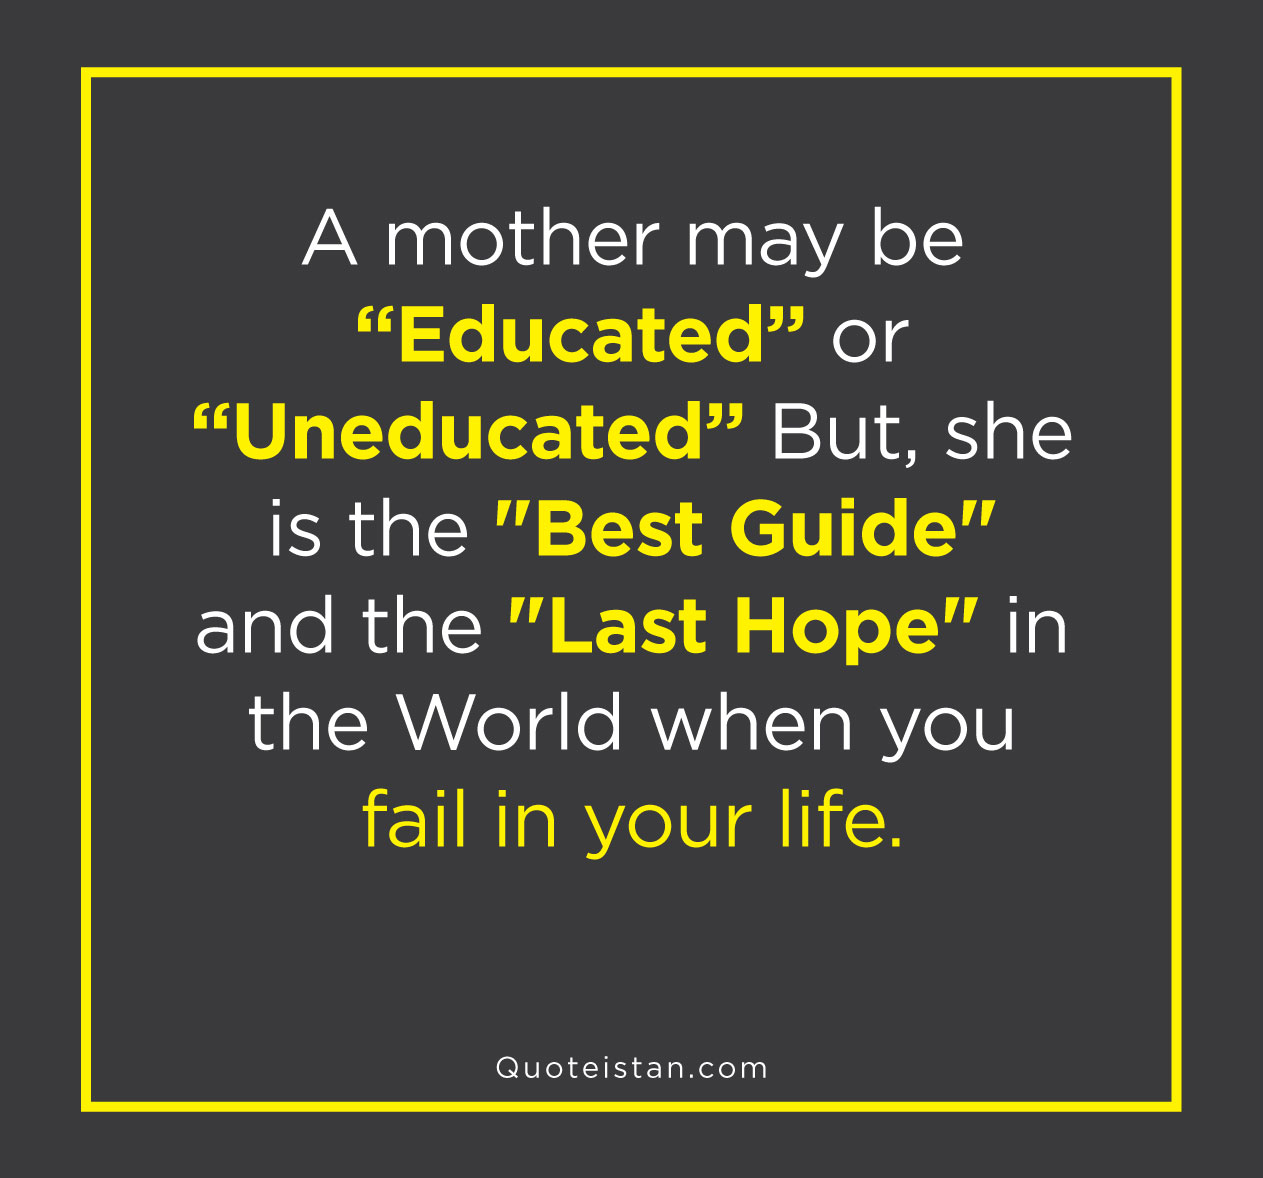 A Mother may be Educated or Uneducated But, she is the Best Guide and the Last Hope in the World when you Fail in your Life.